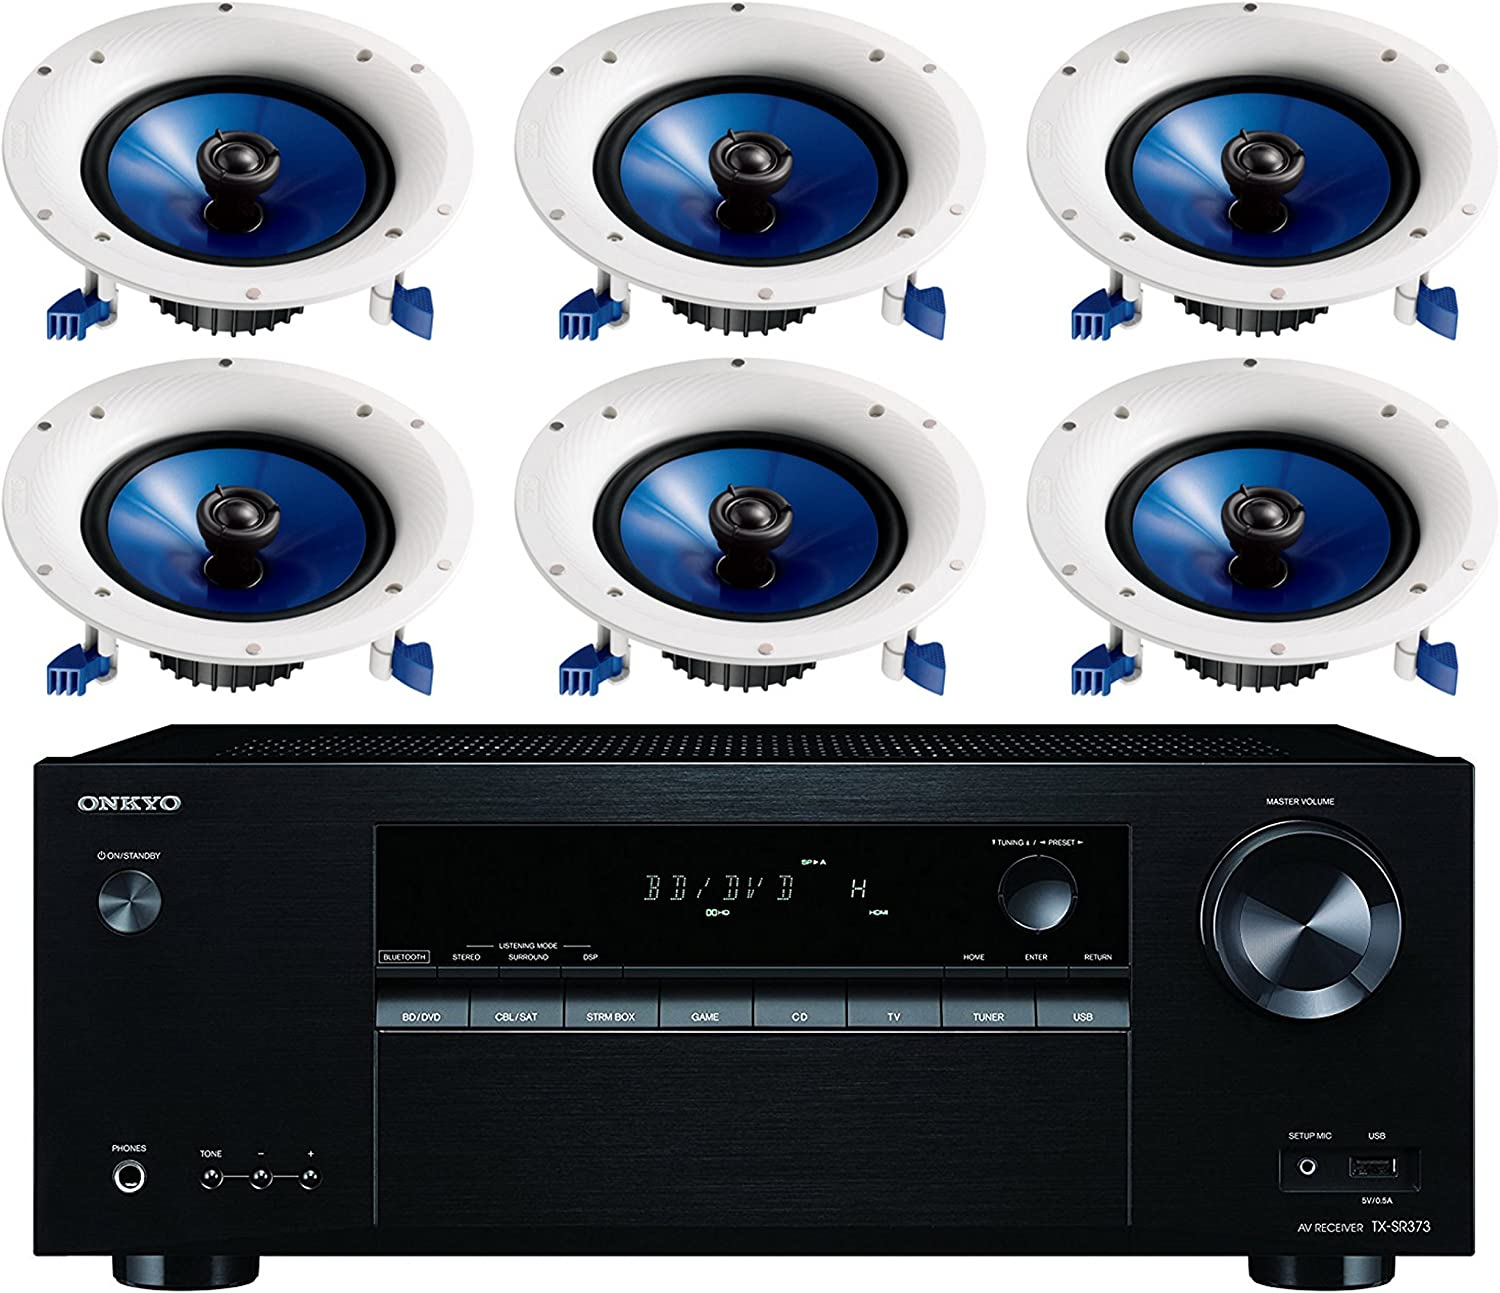 Best Onkyo Home Theater System